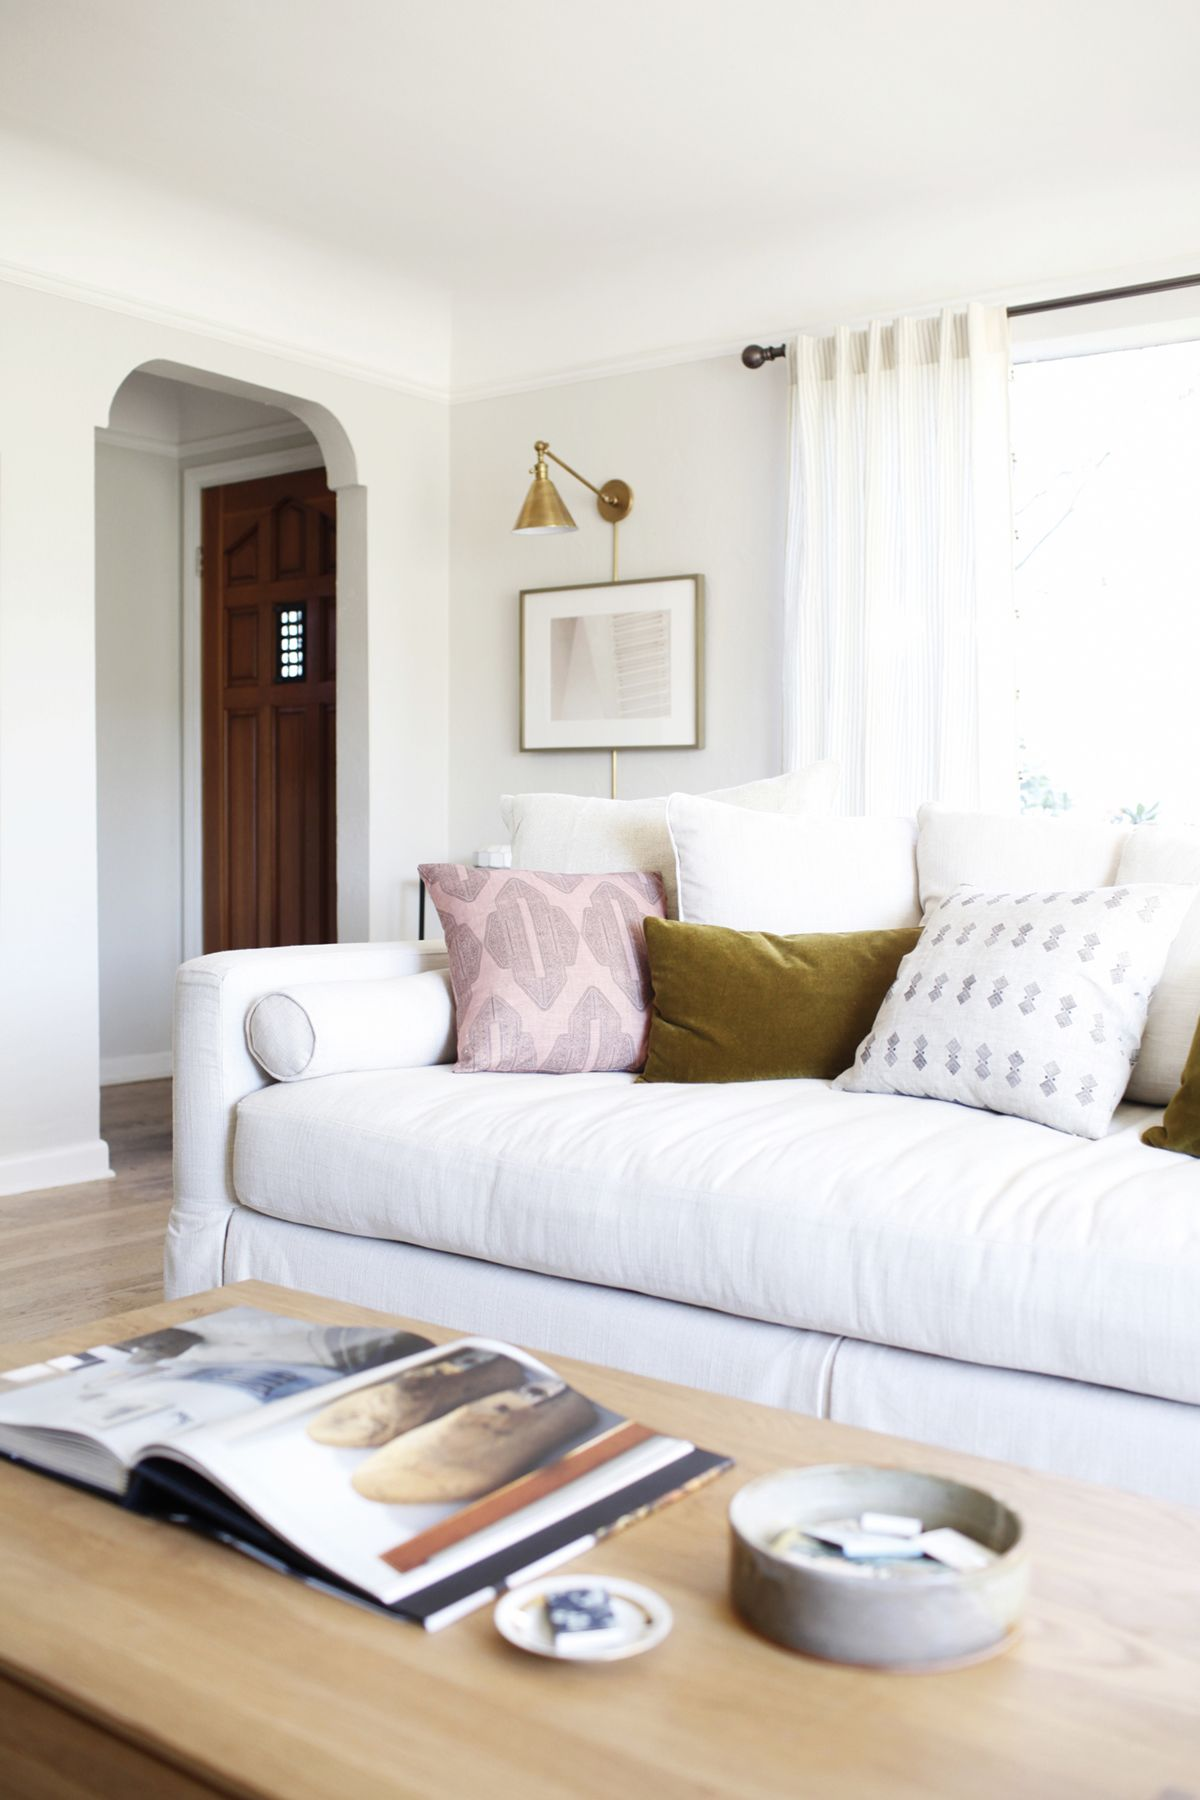 All About Plug-In Wall Sconces (And A Roundup of My Favorites) — Mix & Match Design Company